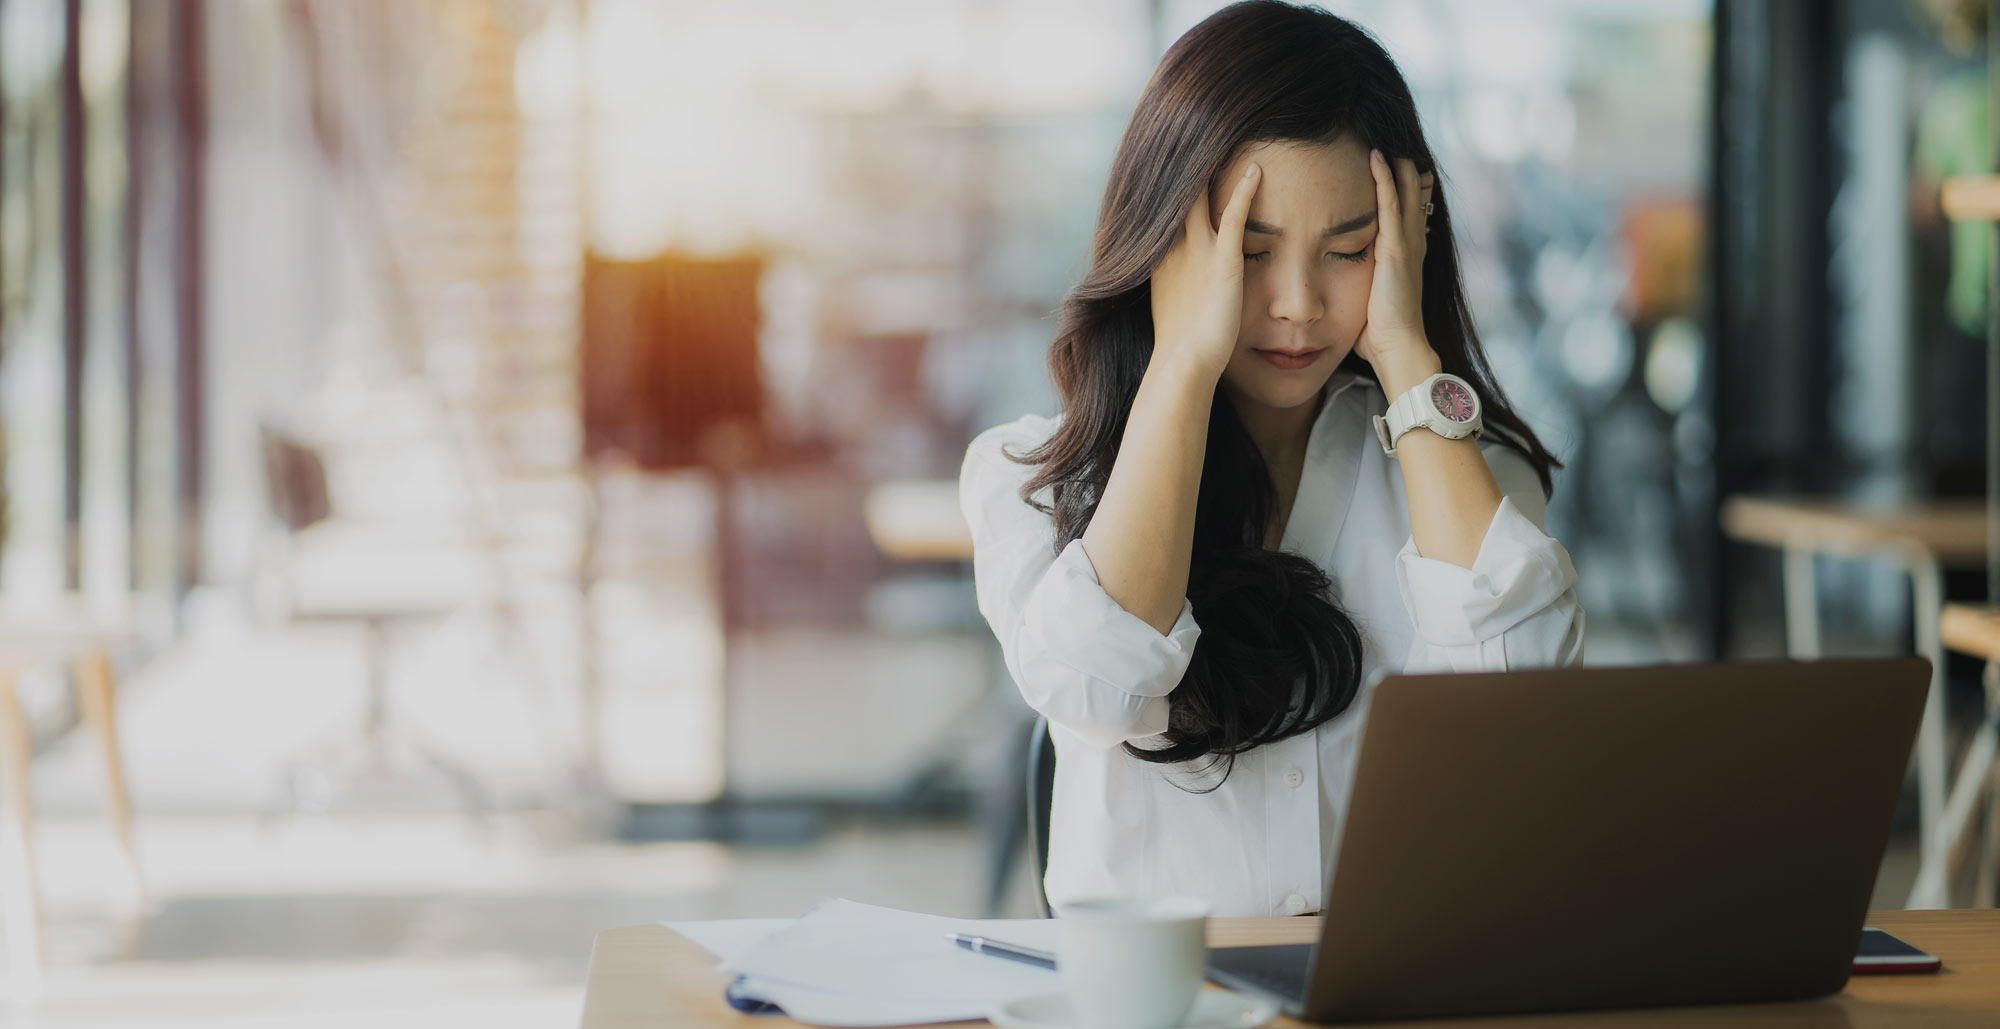 Work stress is on the rise